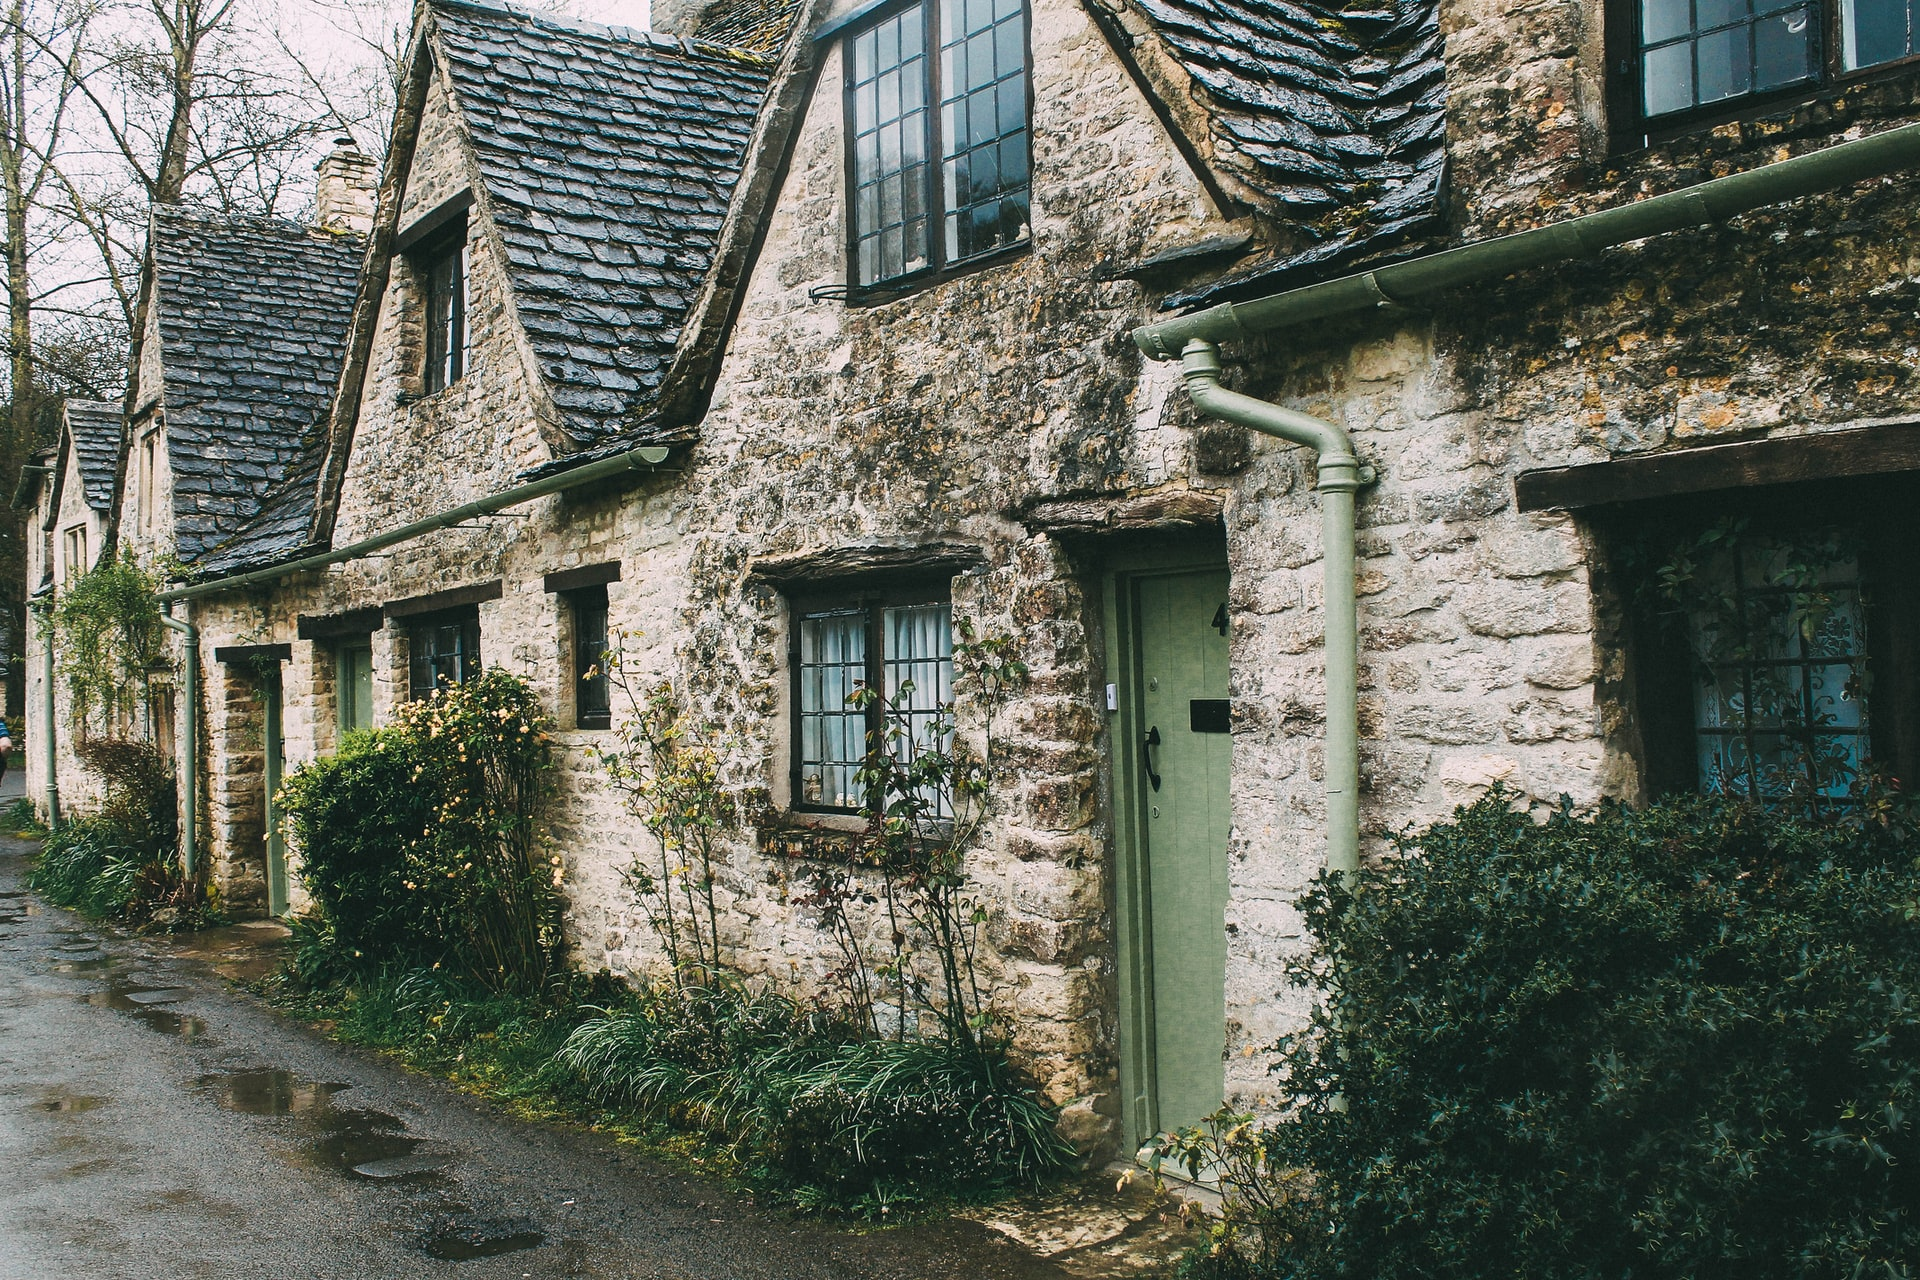 What can you do to a listed building without permission?